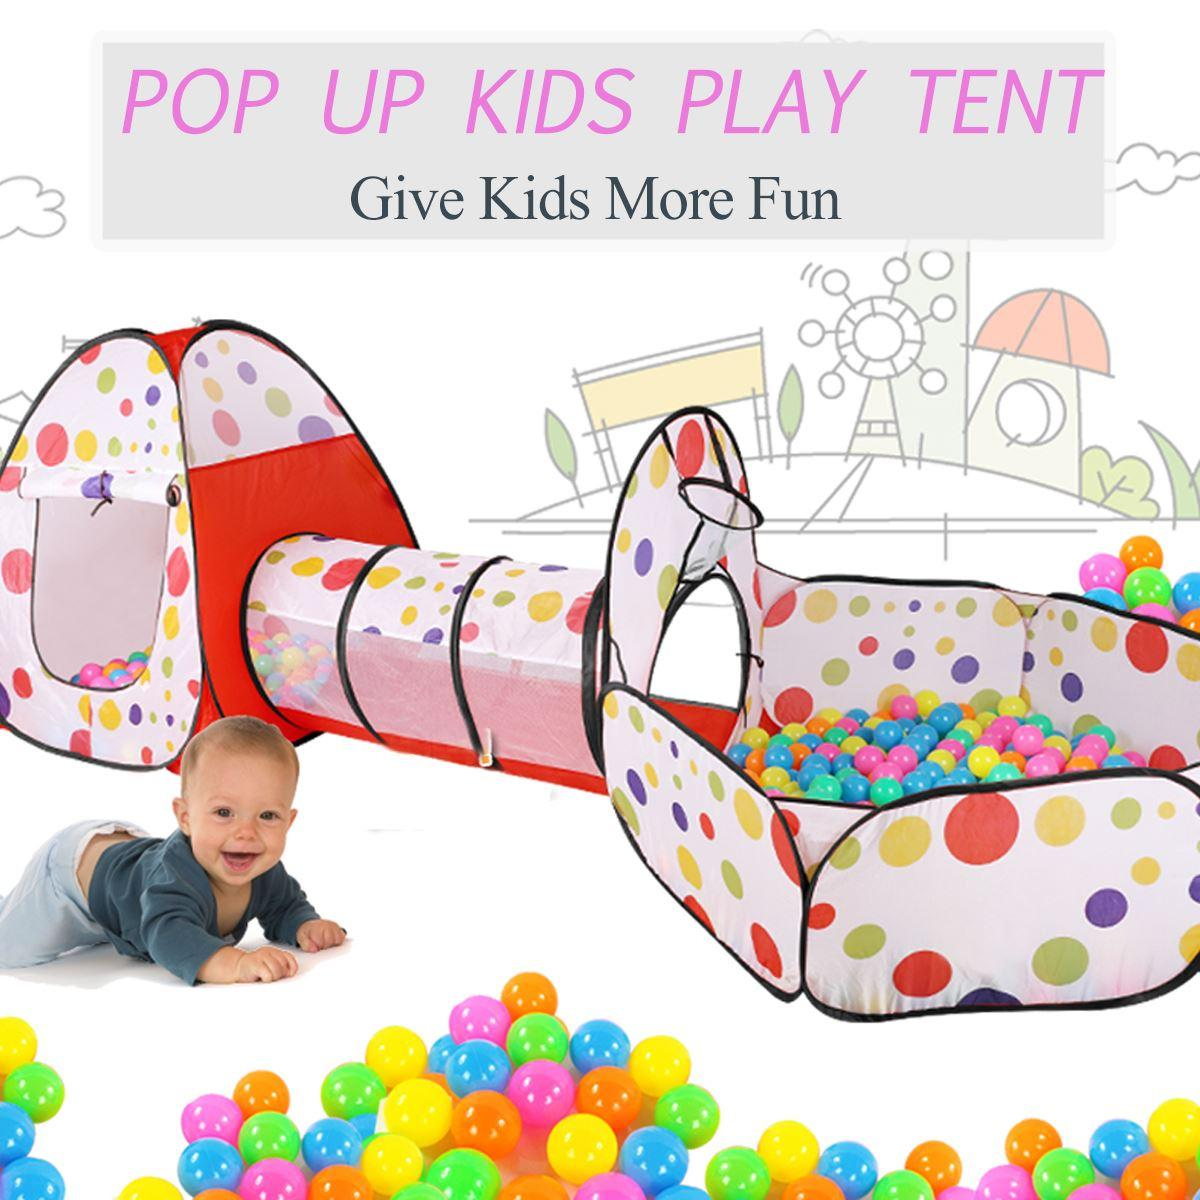 3 In 1 Pop Up Play Tent Playhouse Tunnel Ball Pit Baby Kids Play Folding Toy Indoor Outdoor Playhouse Kids Gaming Toys Tent And Tunnel For Toddler Playhouse ...  sc 1 st  DHgate.com & 3 In 1 Pop Up Play Tent Playhouse Tunnel Ball Pit Baby Kids Play ...